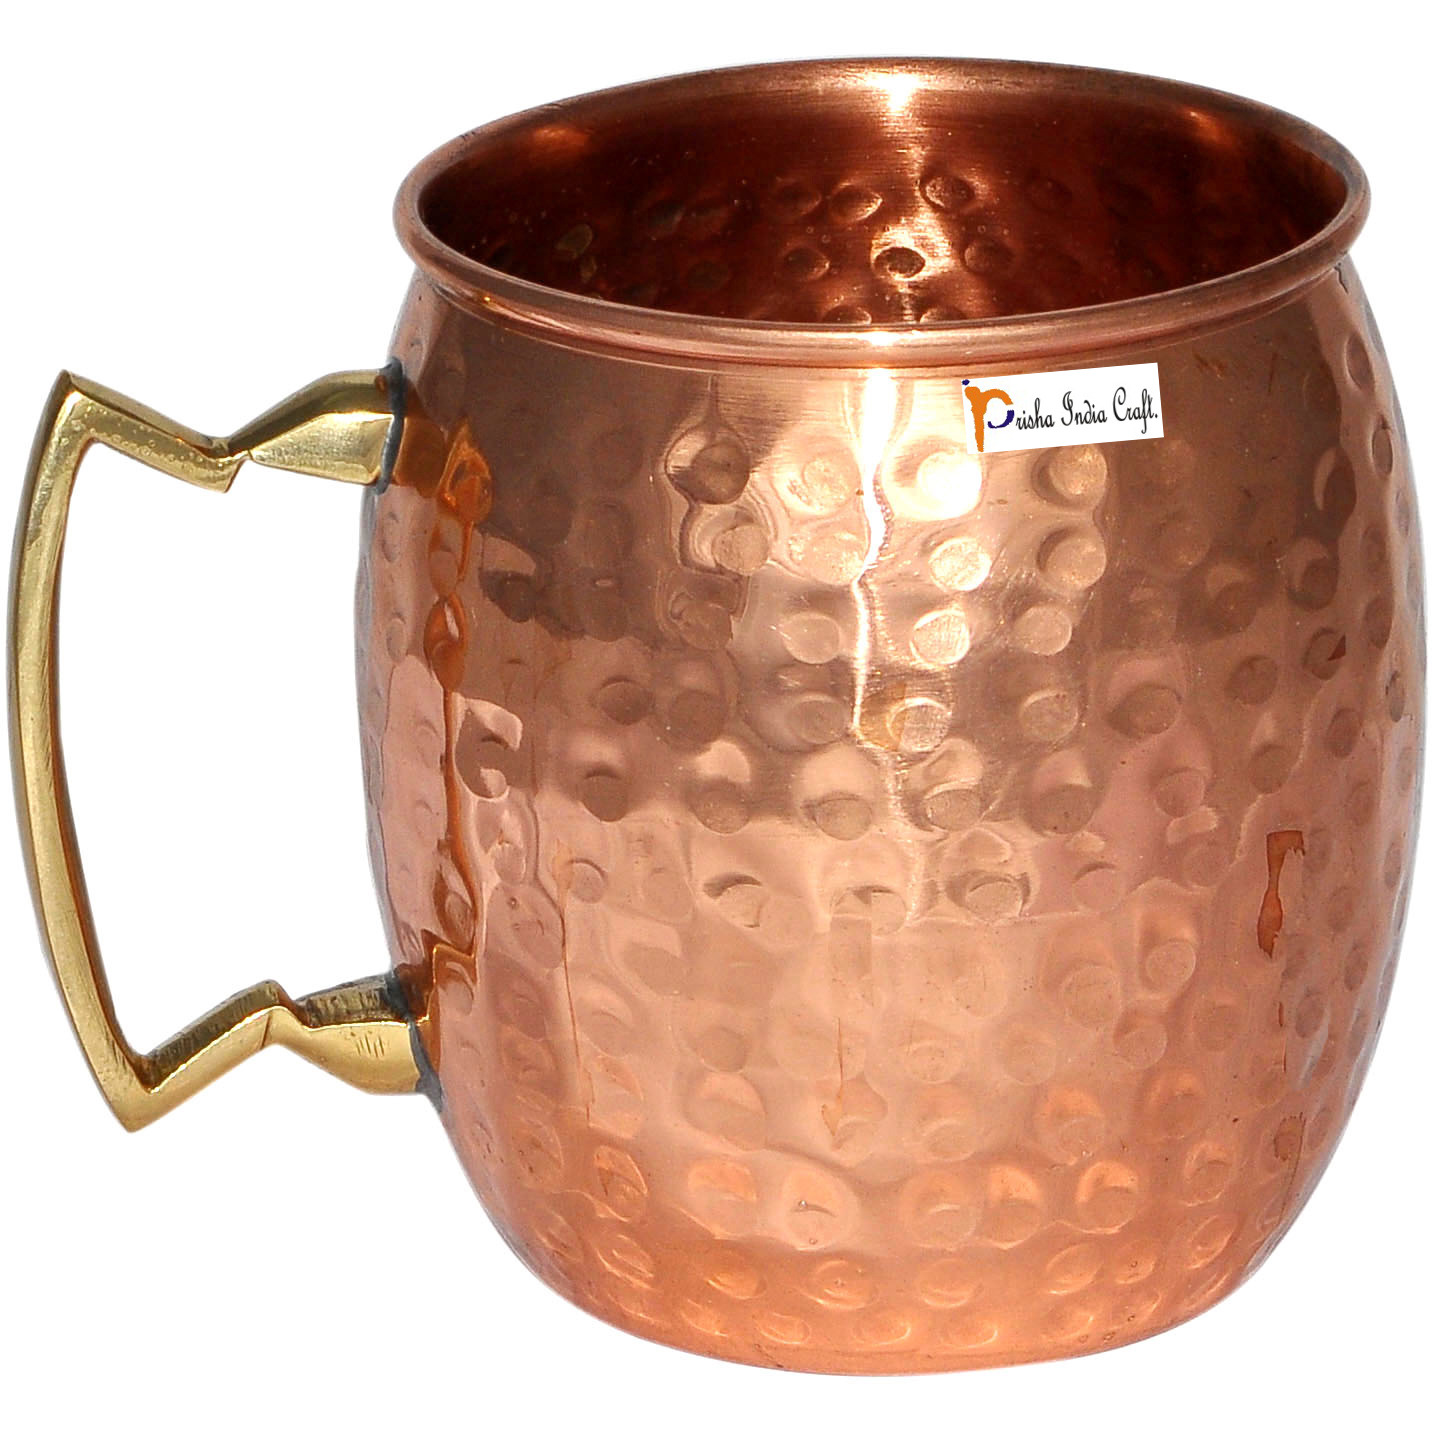 HANDMADE IN INDIA NEW 18oz SET OF 12 100/% COPPER HAMMERED MOSCOW MULE MUG